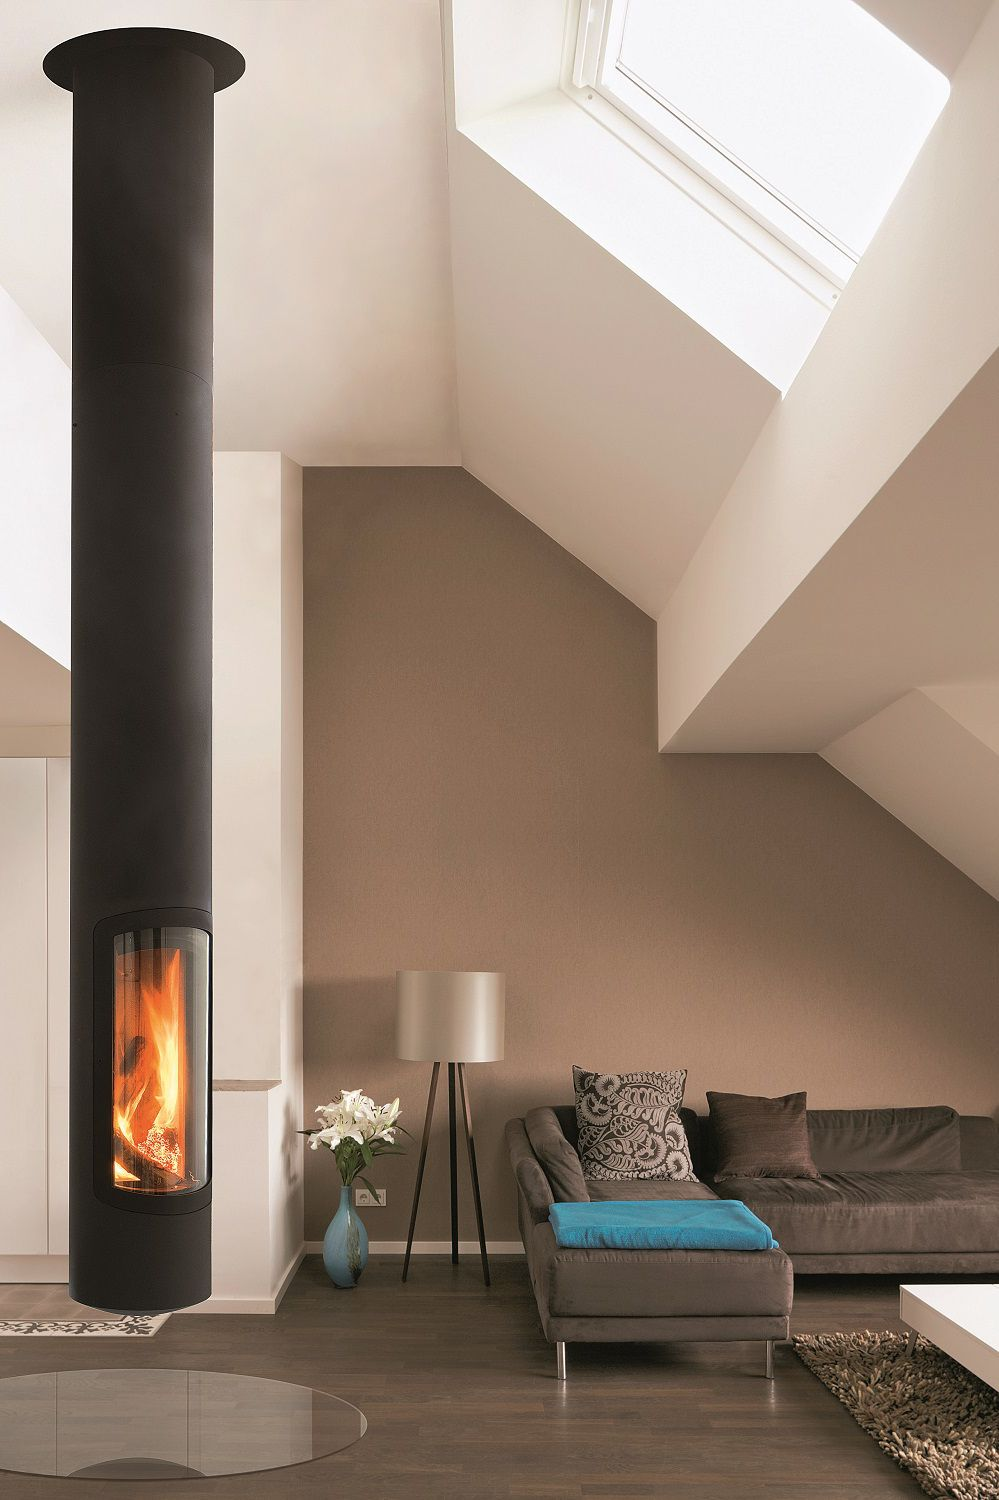 Woodburning central hanging fireplace SLIMFOCUS by Focus